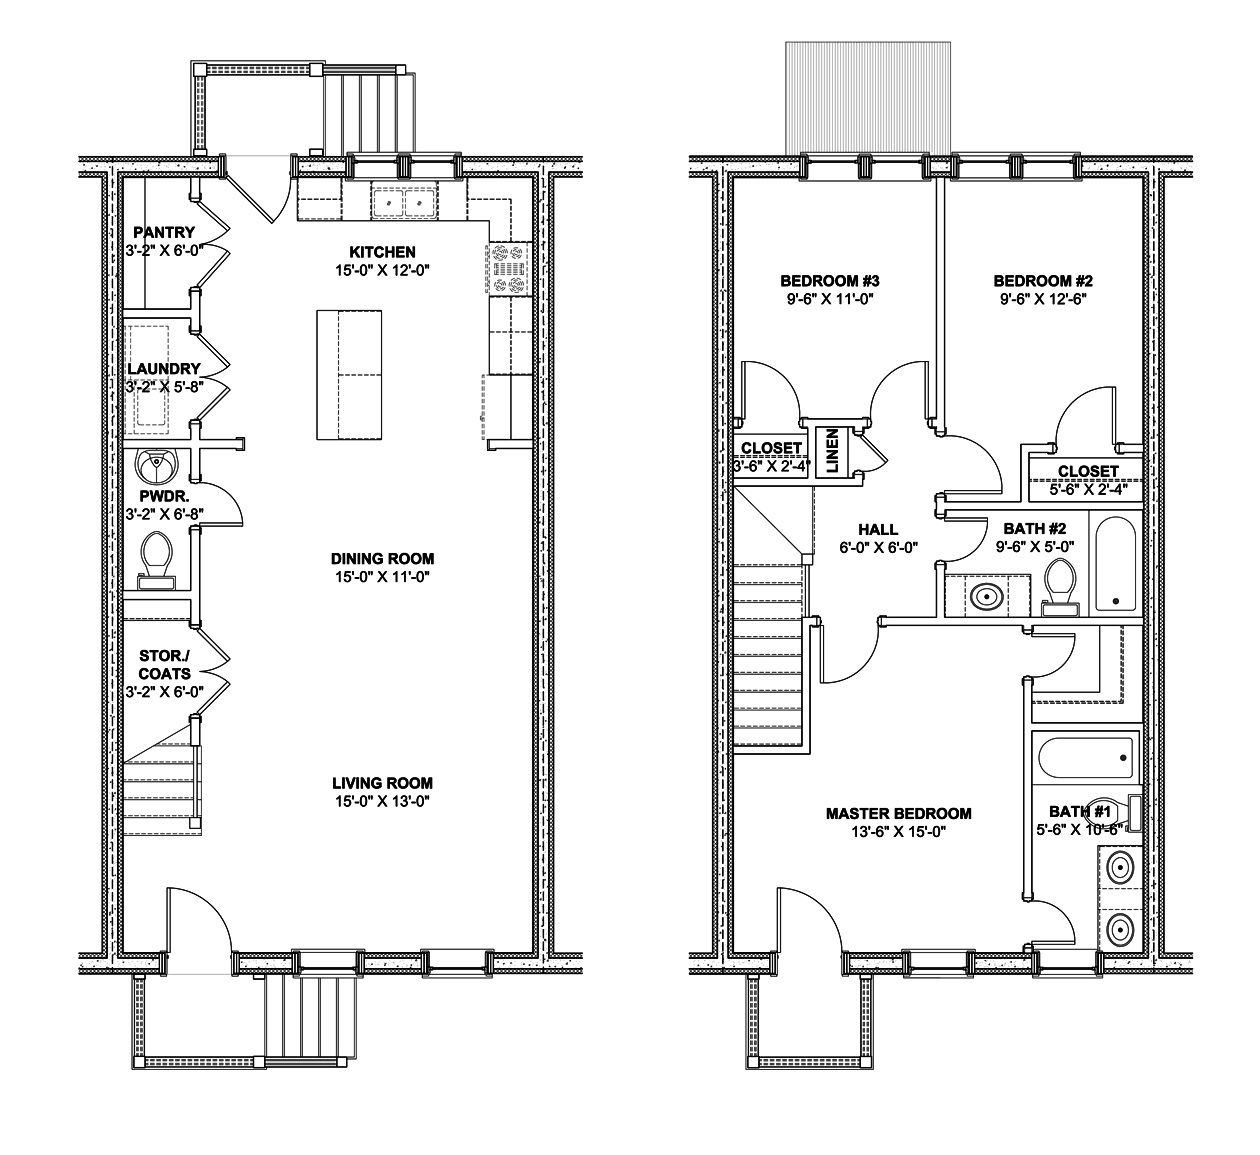 Pin By Lub On Story Unique House Plans House Layout Plans Row House Design